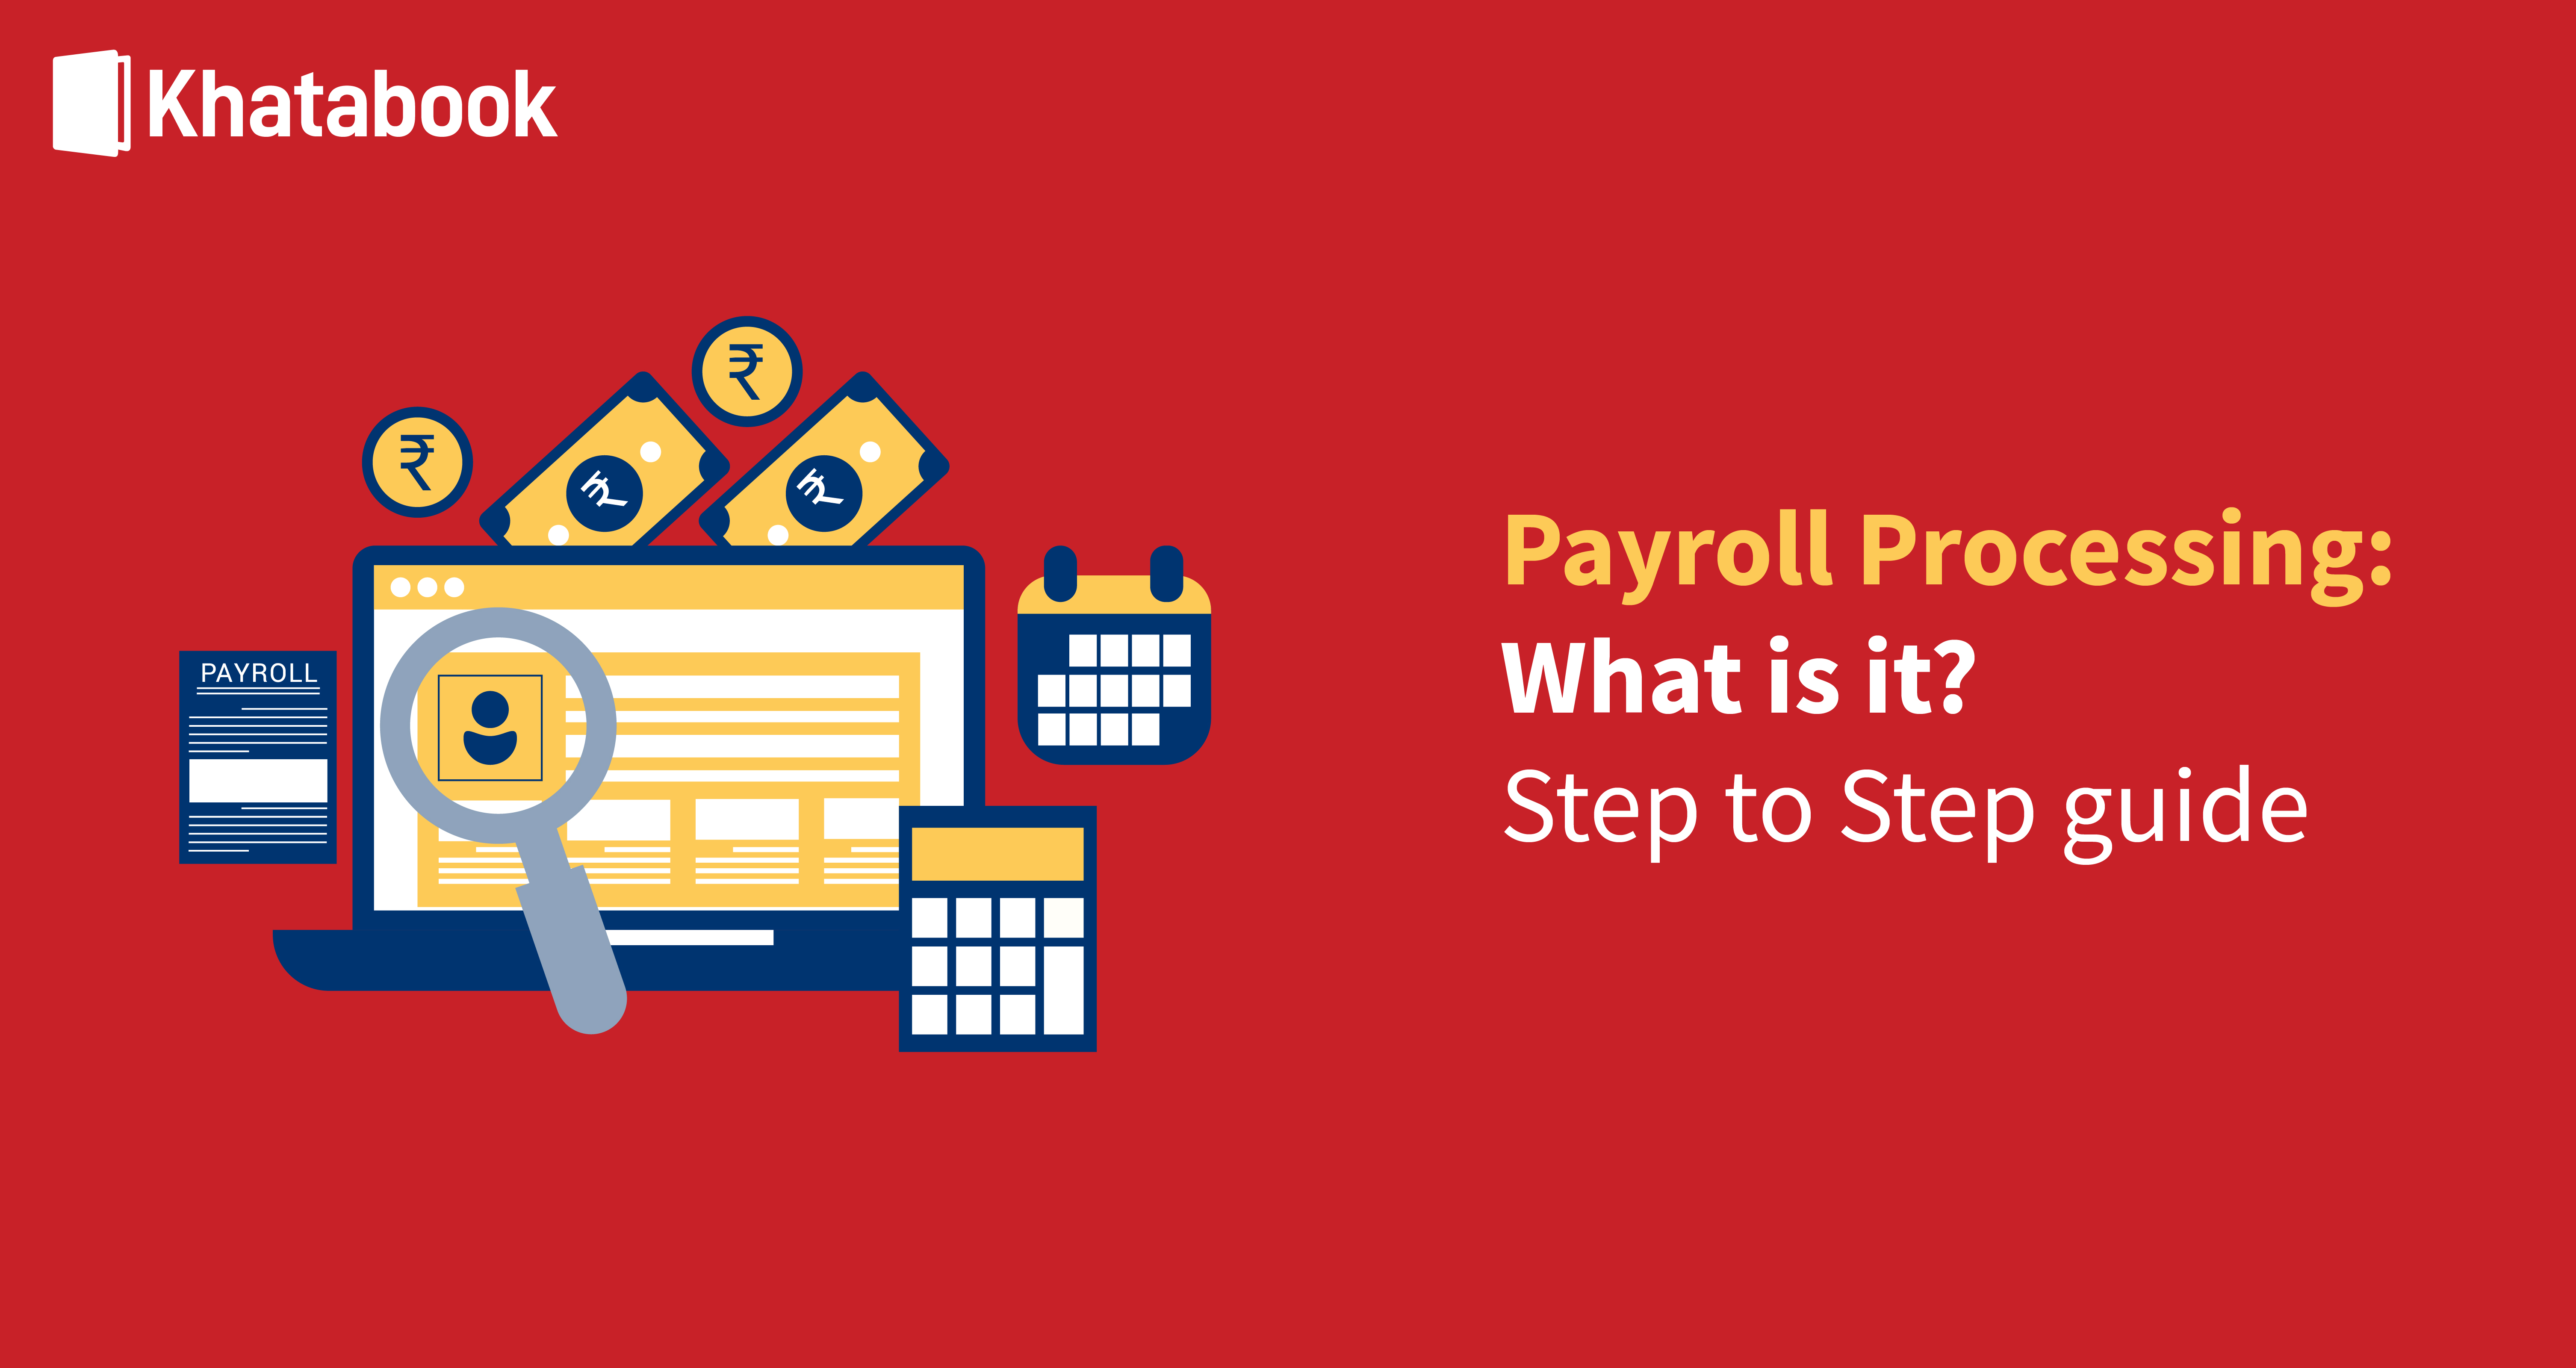 Step-Wise Guide To Payroll Processing